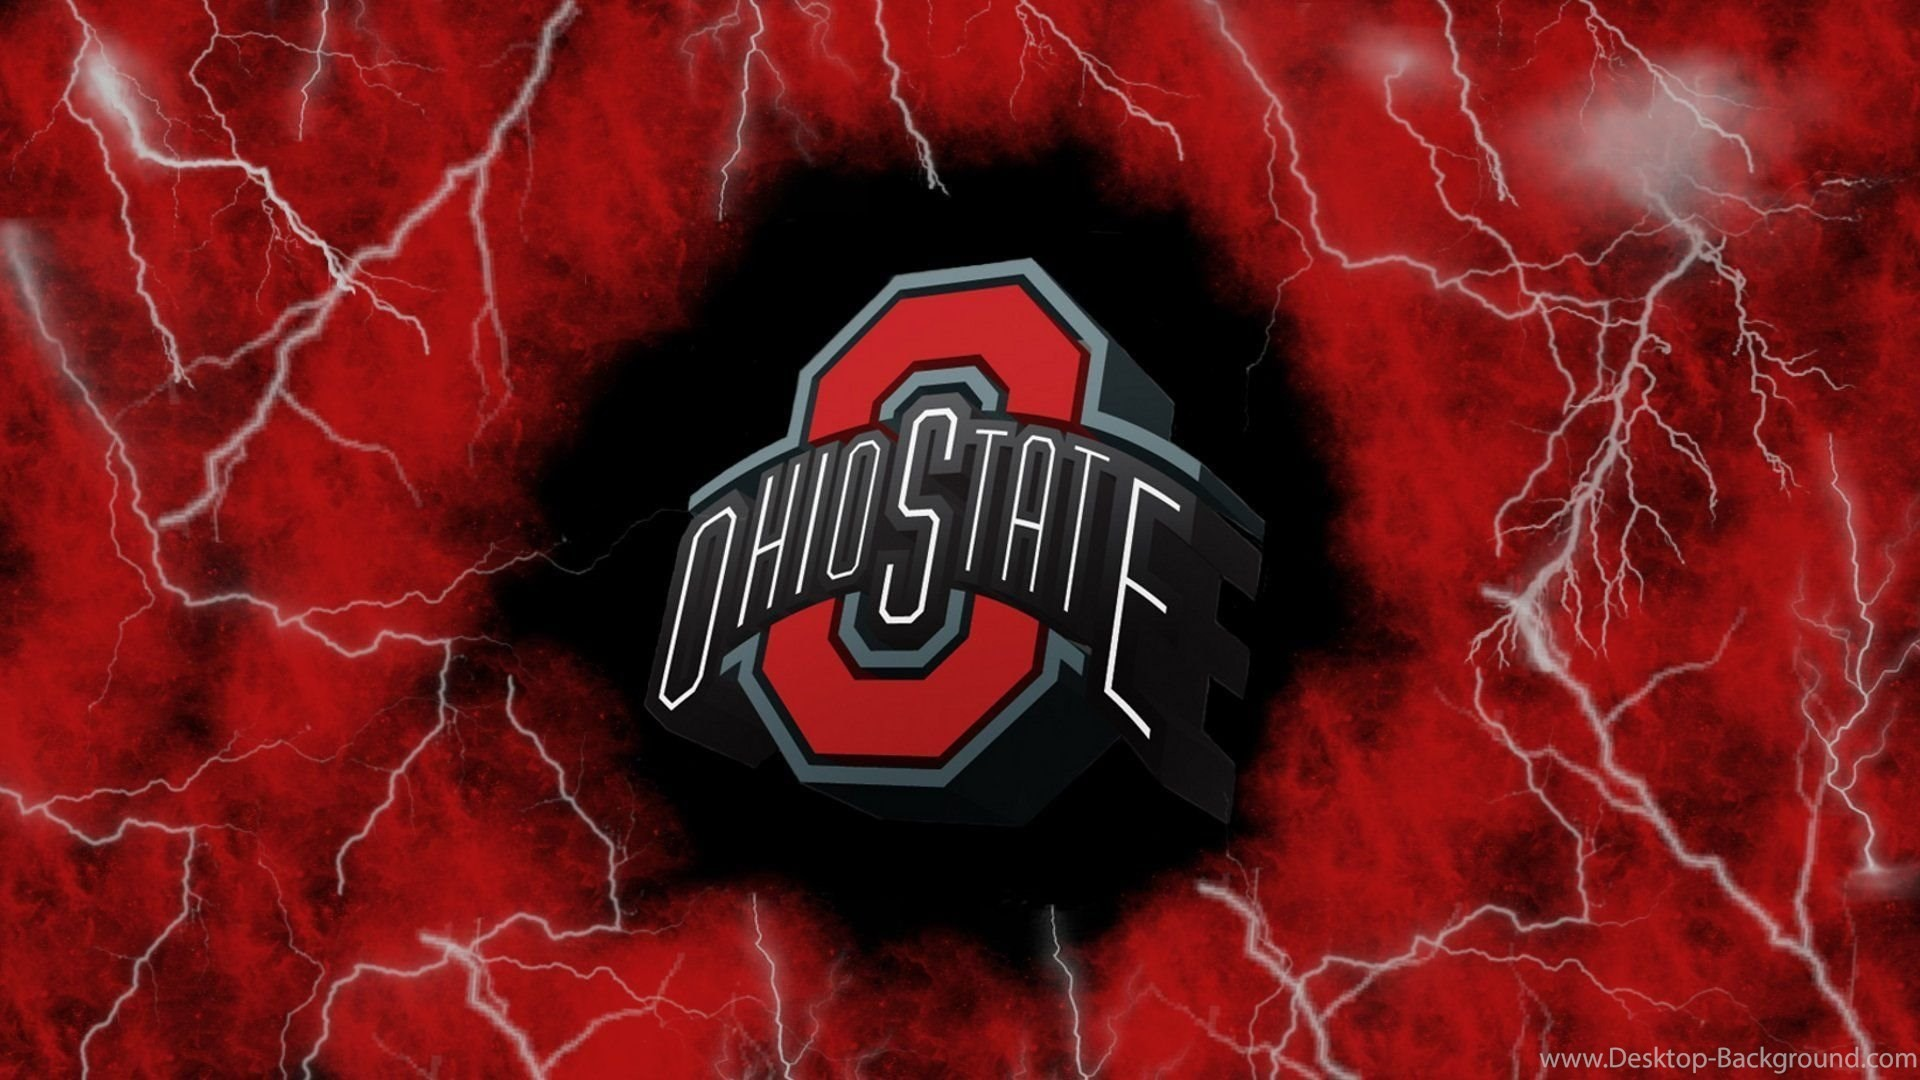 1920x1080 Osu desktop wallpapers ohio state football wallpapers jpg  Ohio  state football wallpaper